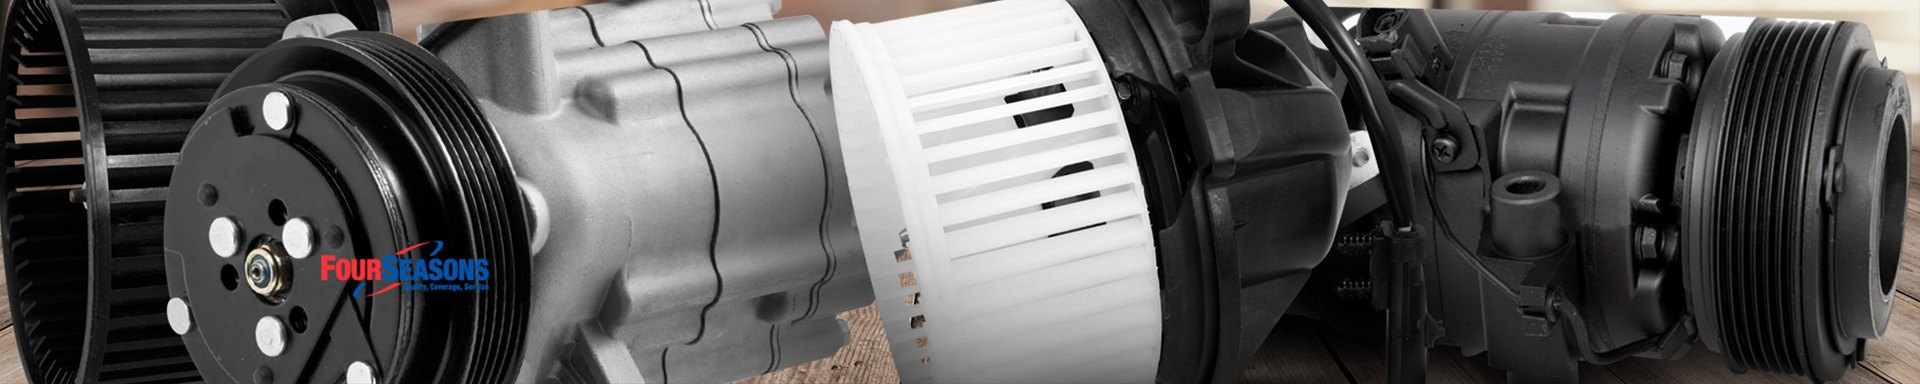 Four Seasons A/C and Heating Parts